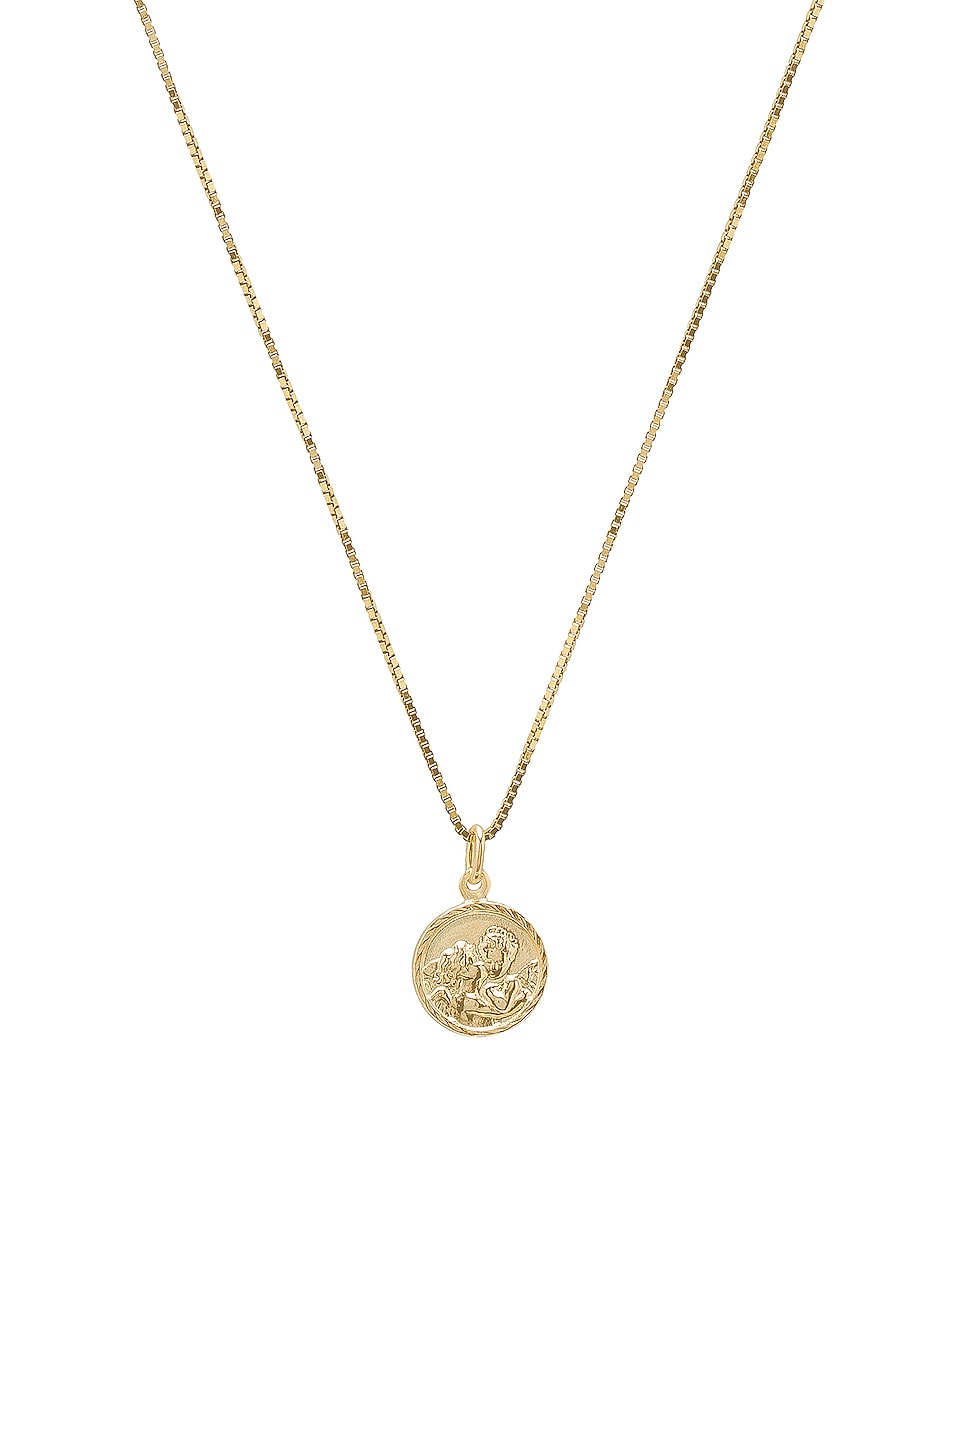 The M Jewelers NY Tiny Angel Pendant Necklace in Gold